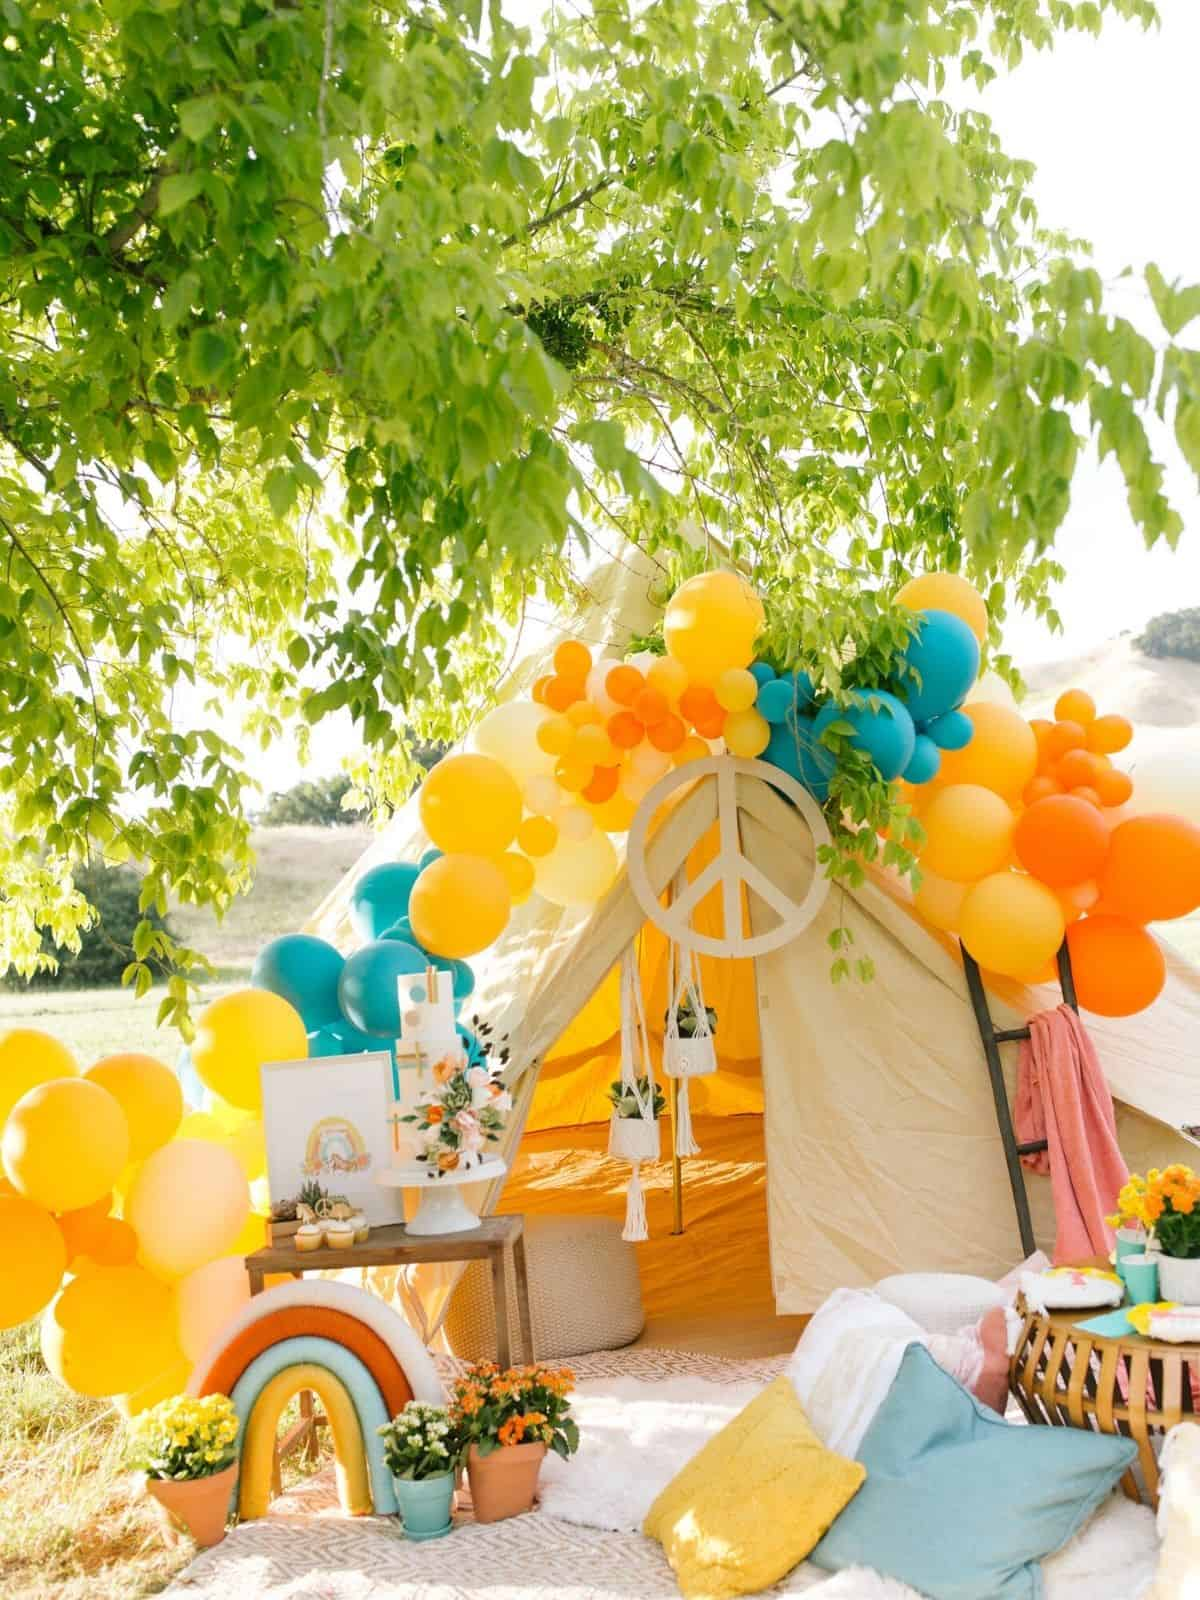 60s party themes peace and love idea